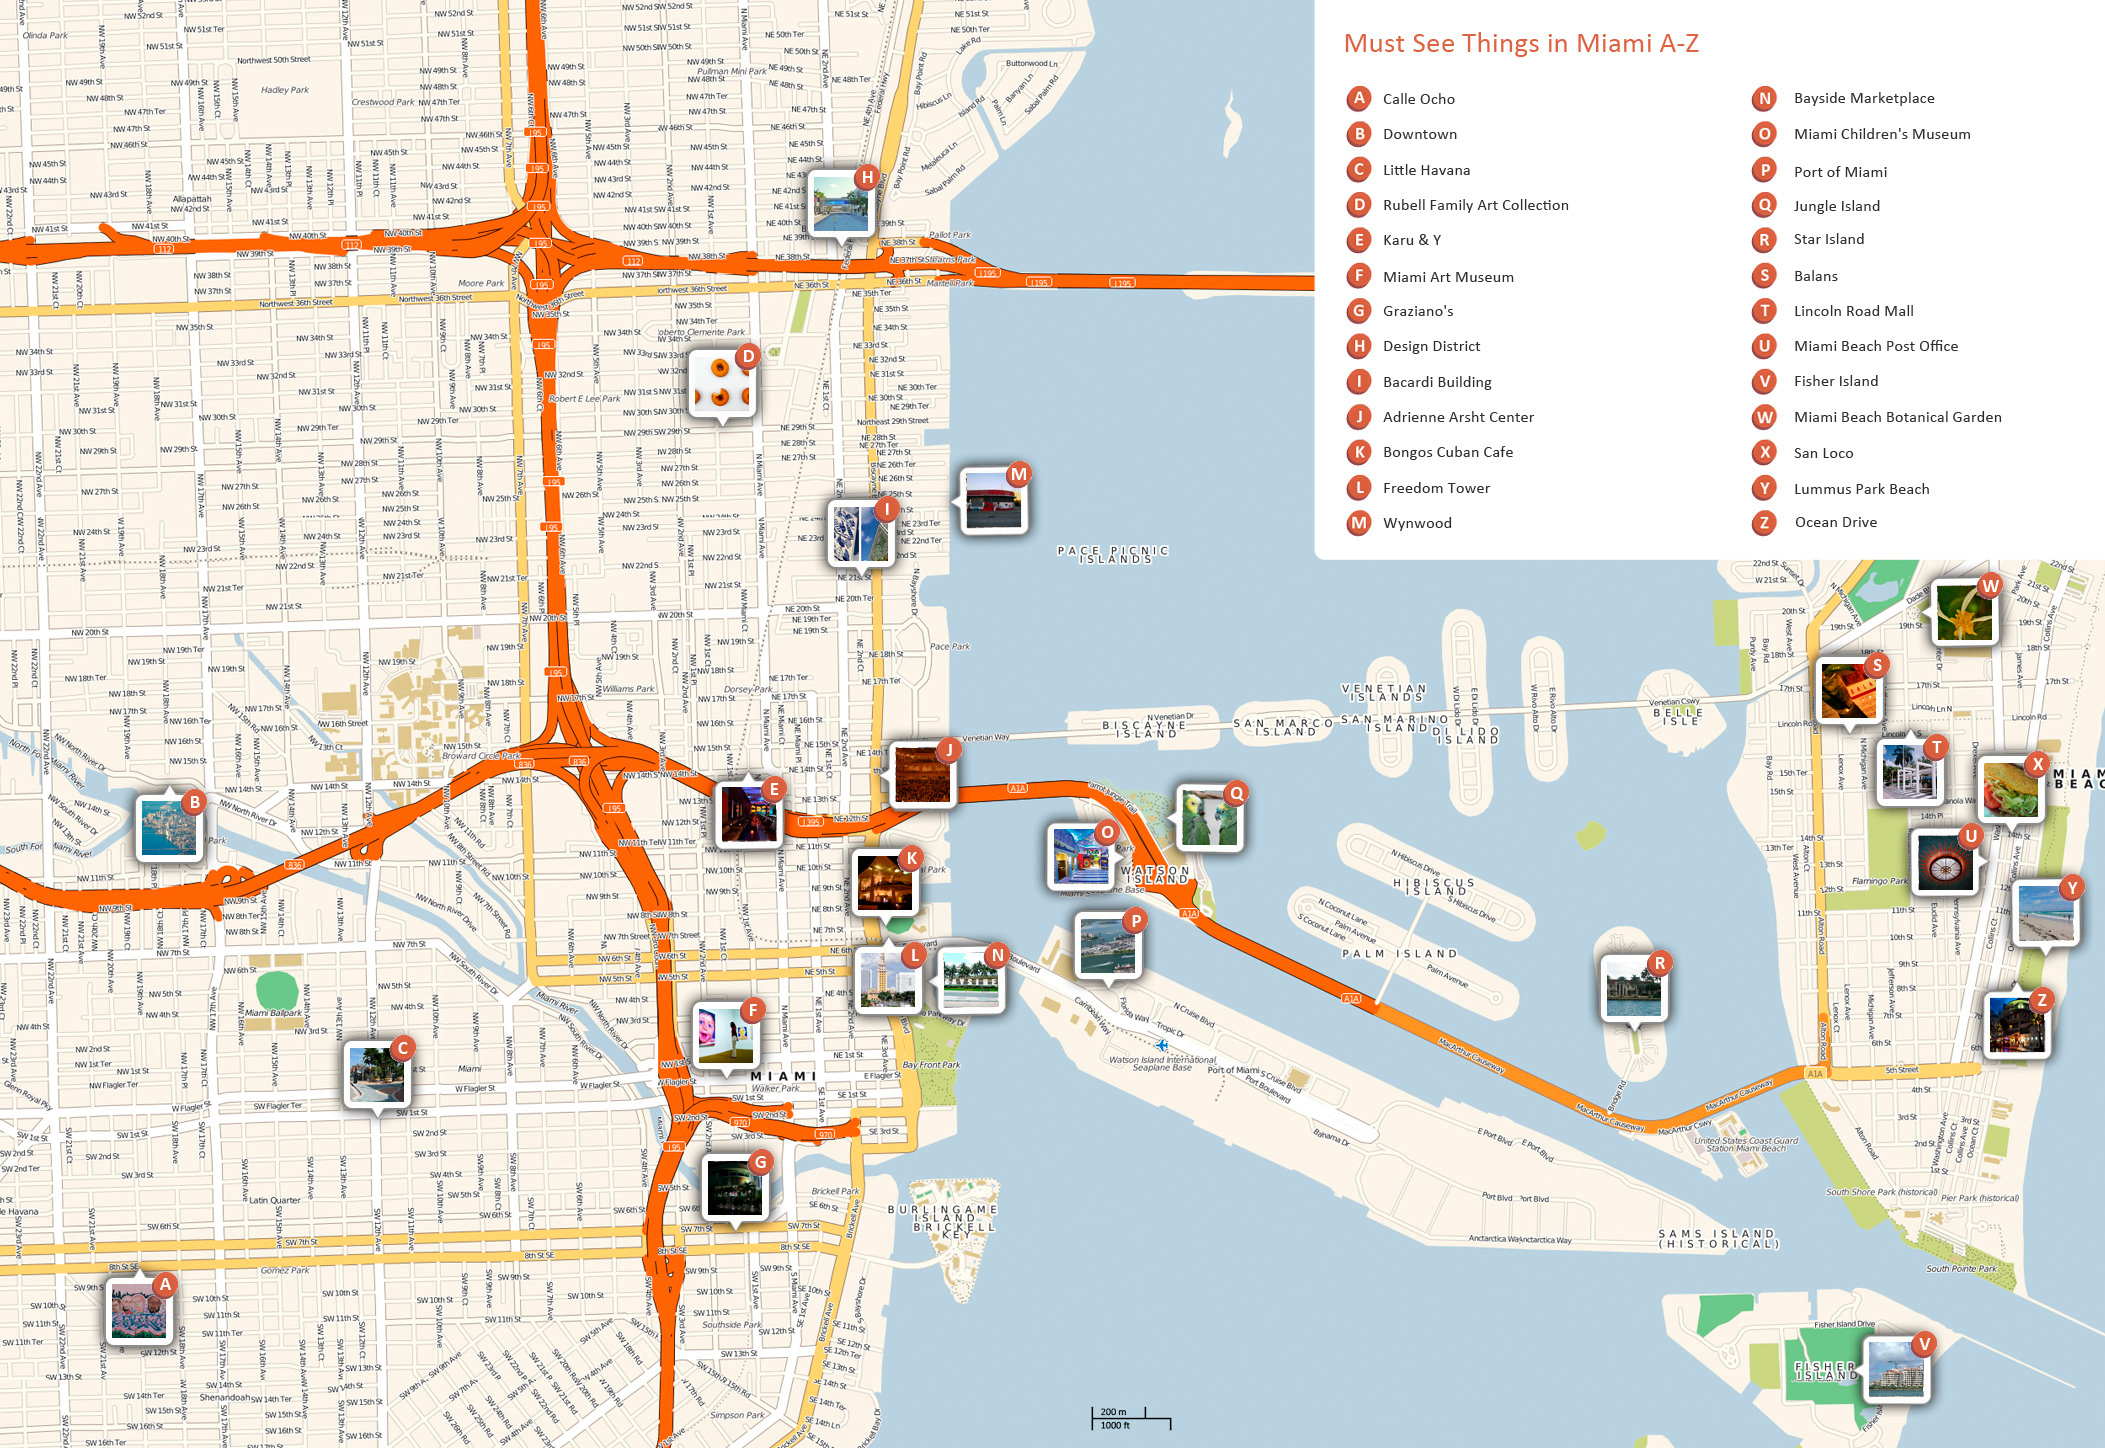 Large Miami Maps For Free Download And Print | High-Resolution And - Clear Lake Florida Map